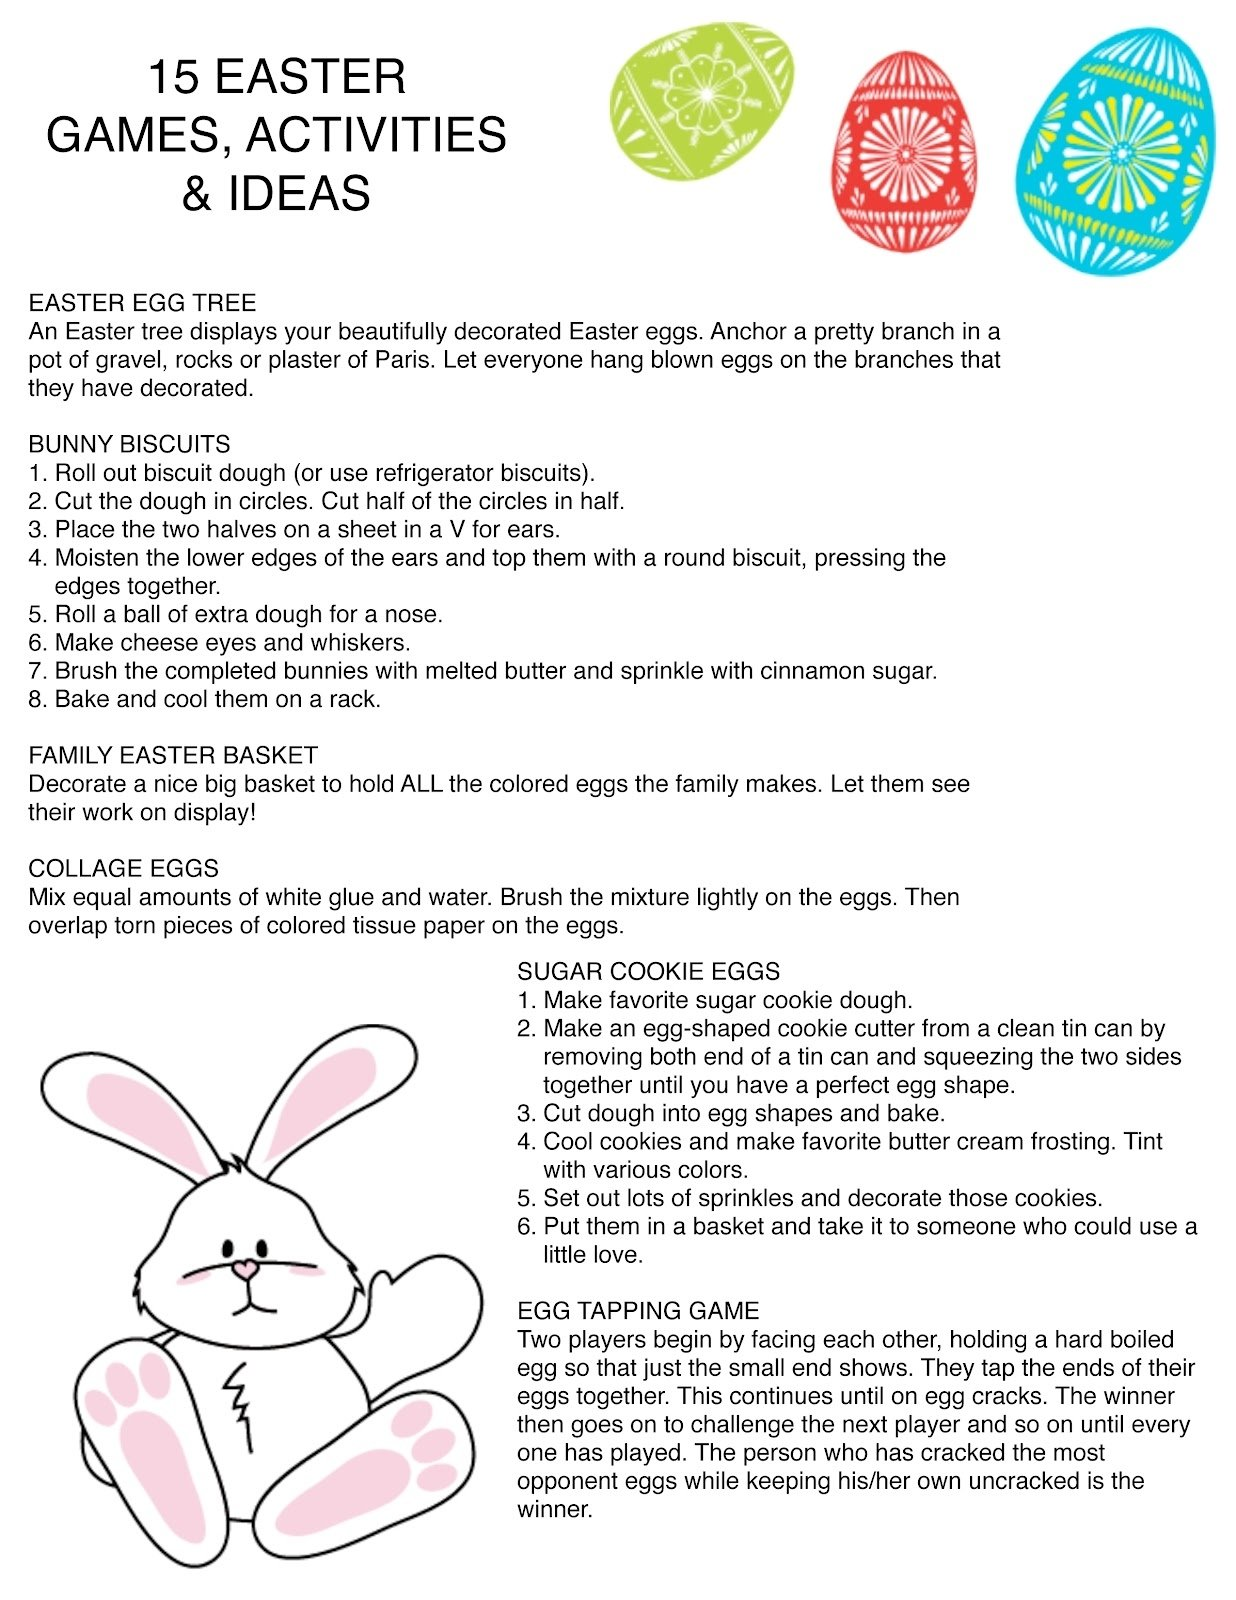 ideas for easter party games - wedding